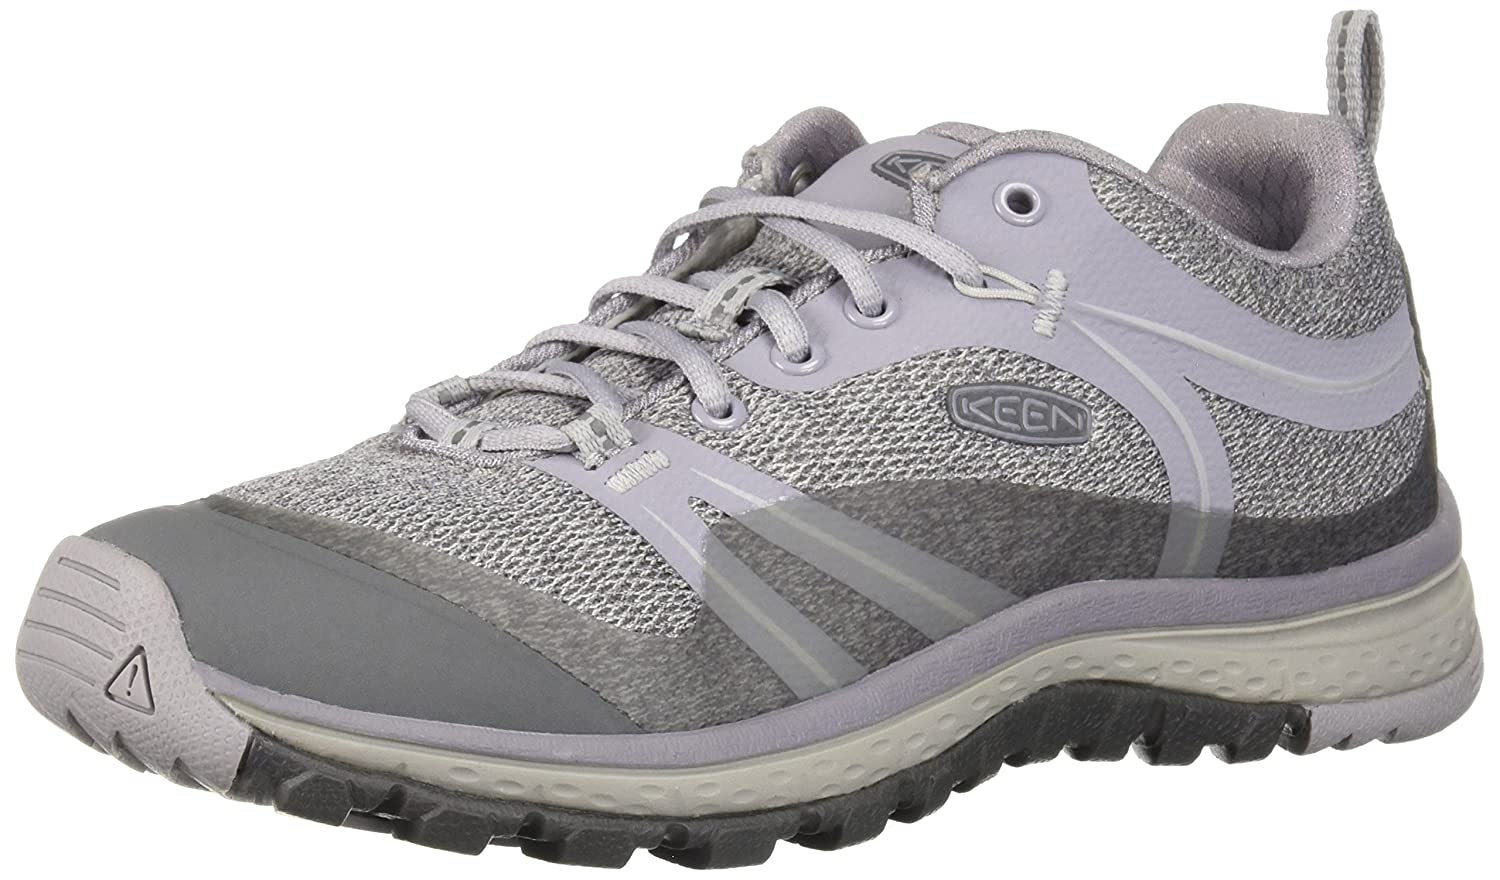 KEEN Women's Terradora Hiking Shoe B077KG9DM6 7.5 B(M) US|Dapple Grey/Vapor